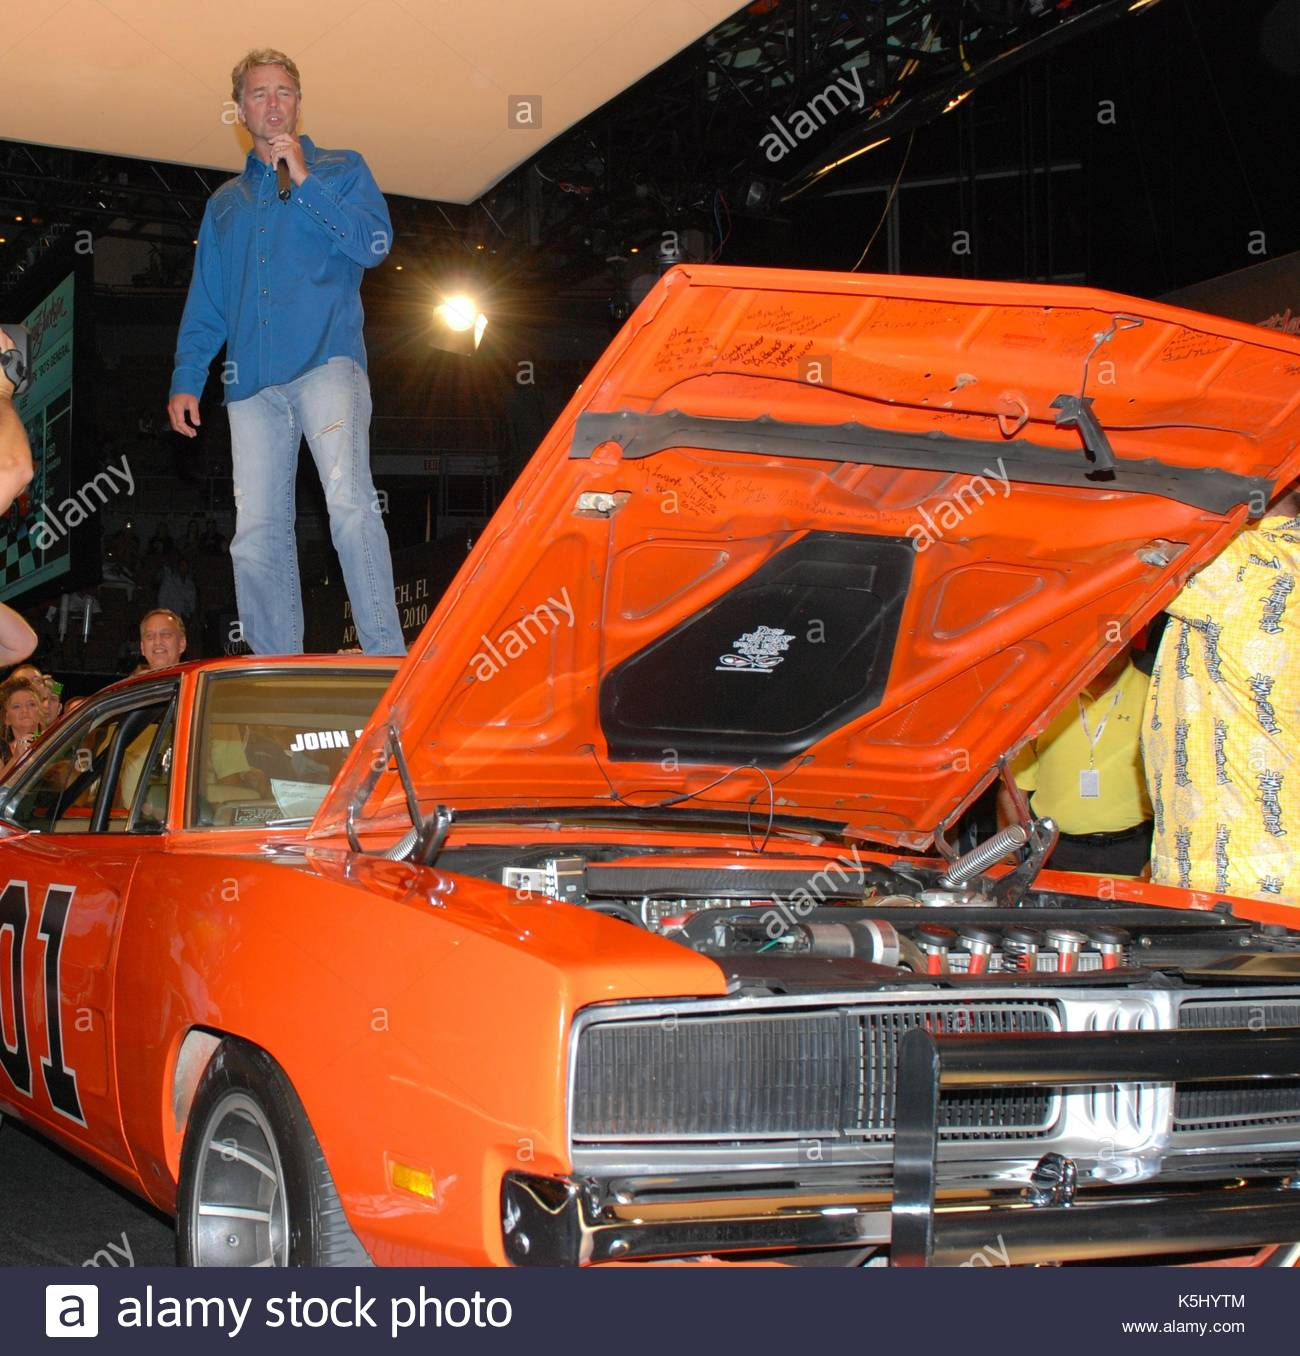 John Schneider. John Schneider auctions off the Dukes of Hazzard car ...